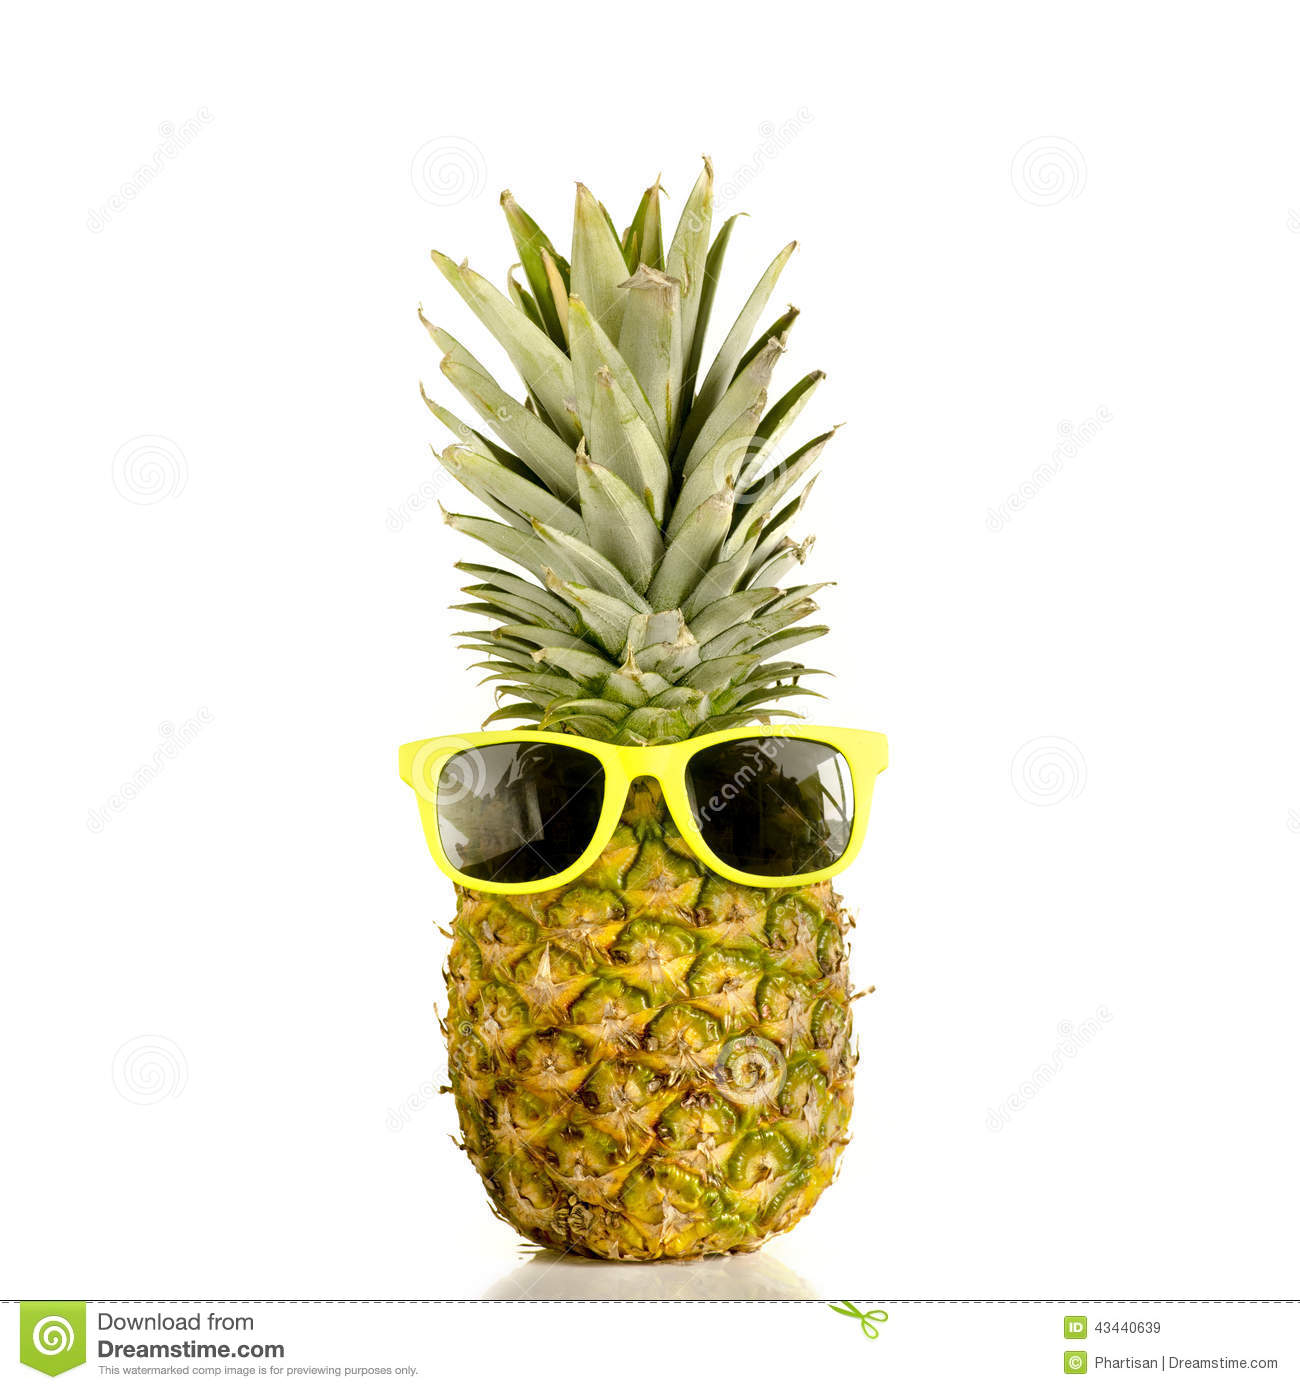 Photo of Pineapple wearing sunglasses isolated against white ...